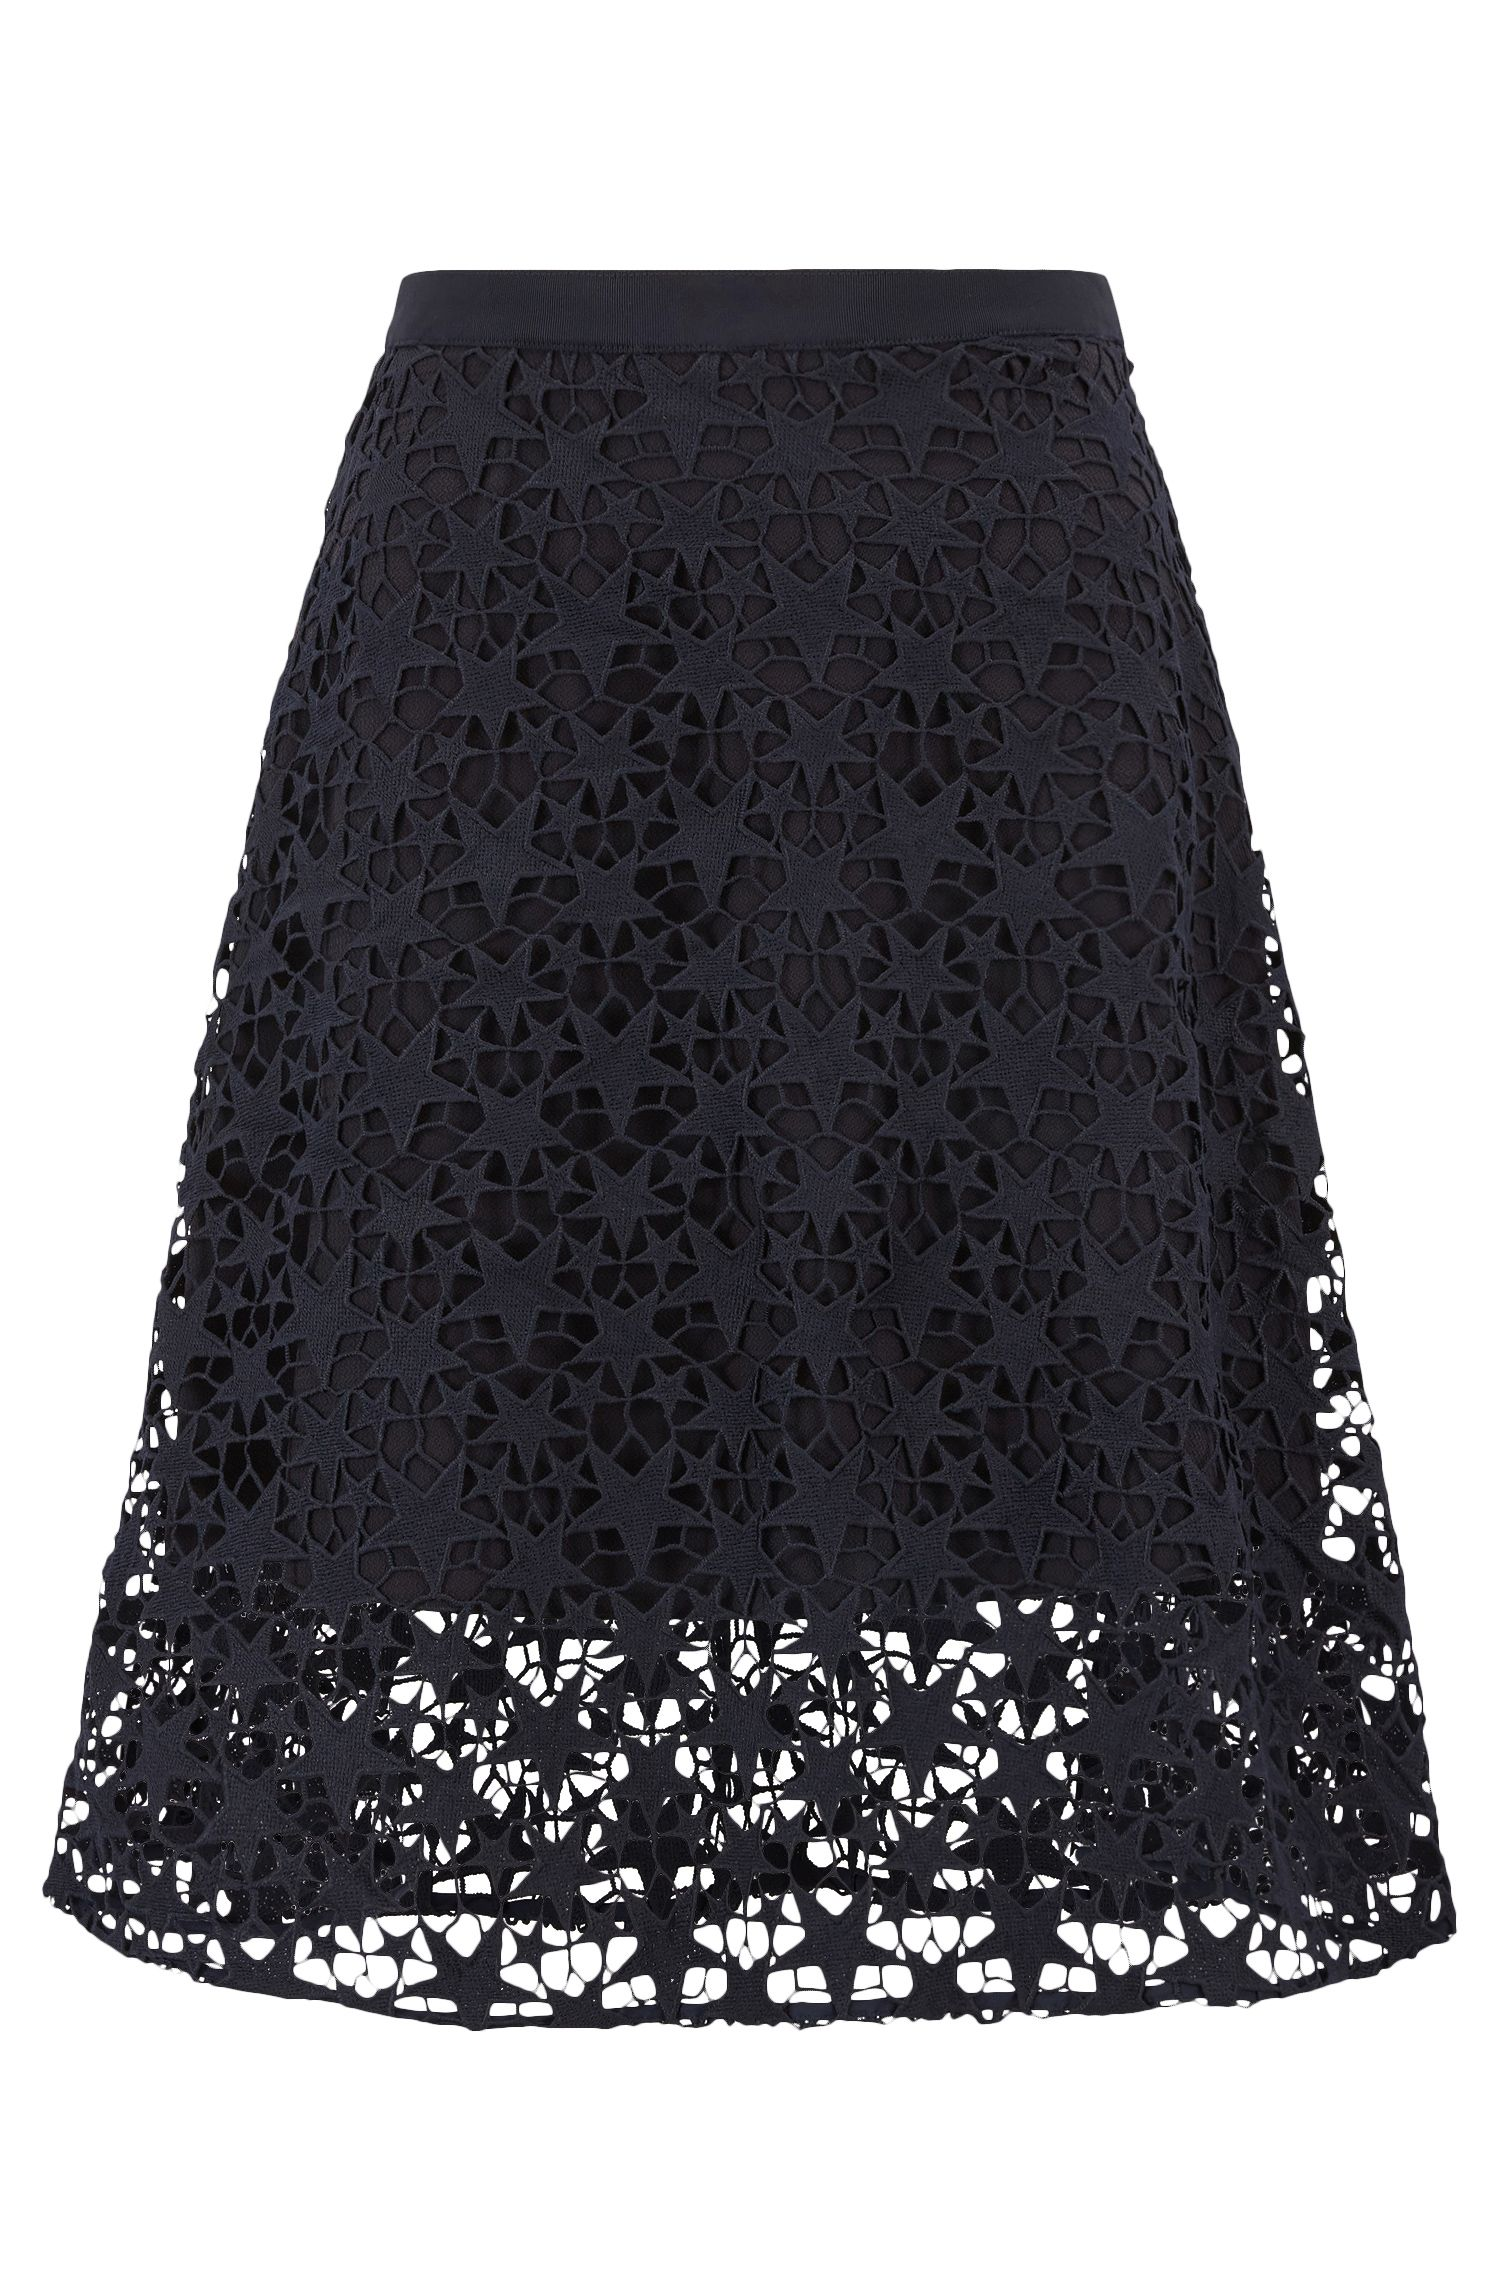 Layered A-line midi skirt in star lace